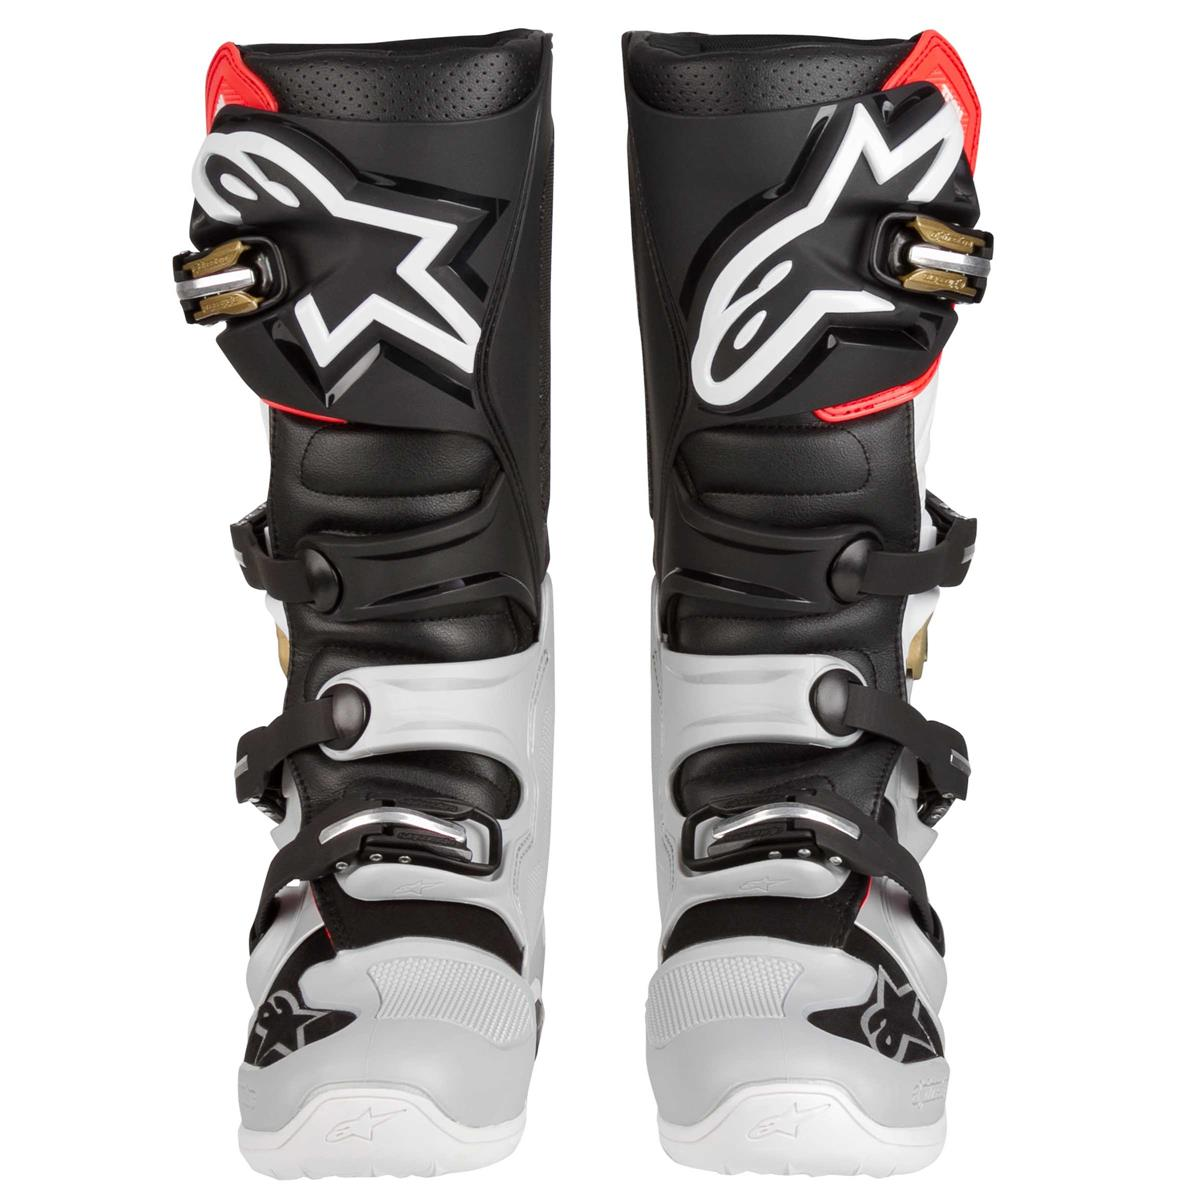 2012014 1829 2020 Alpinestars Tech 7 Motocross Boots Black Silver White Gold Bottes Enduro Stiefel Crosslaarzen